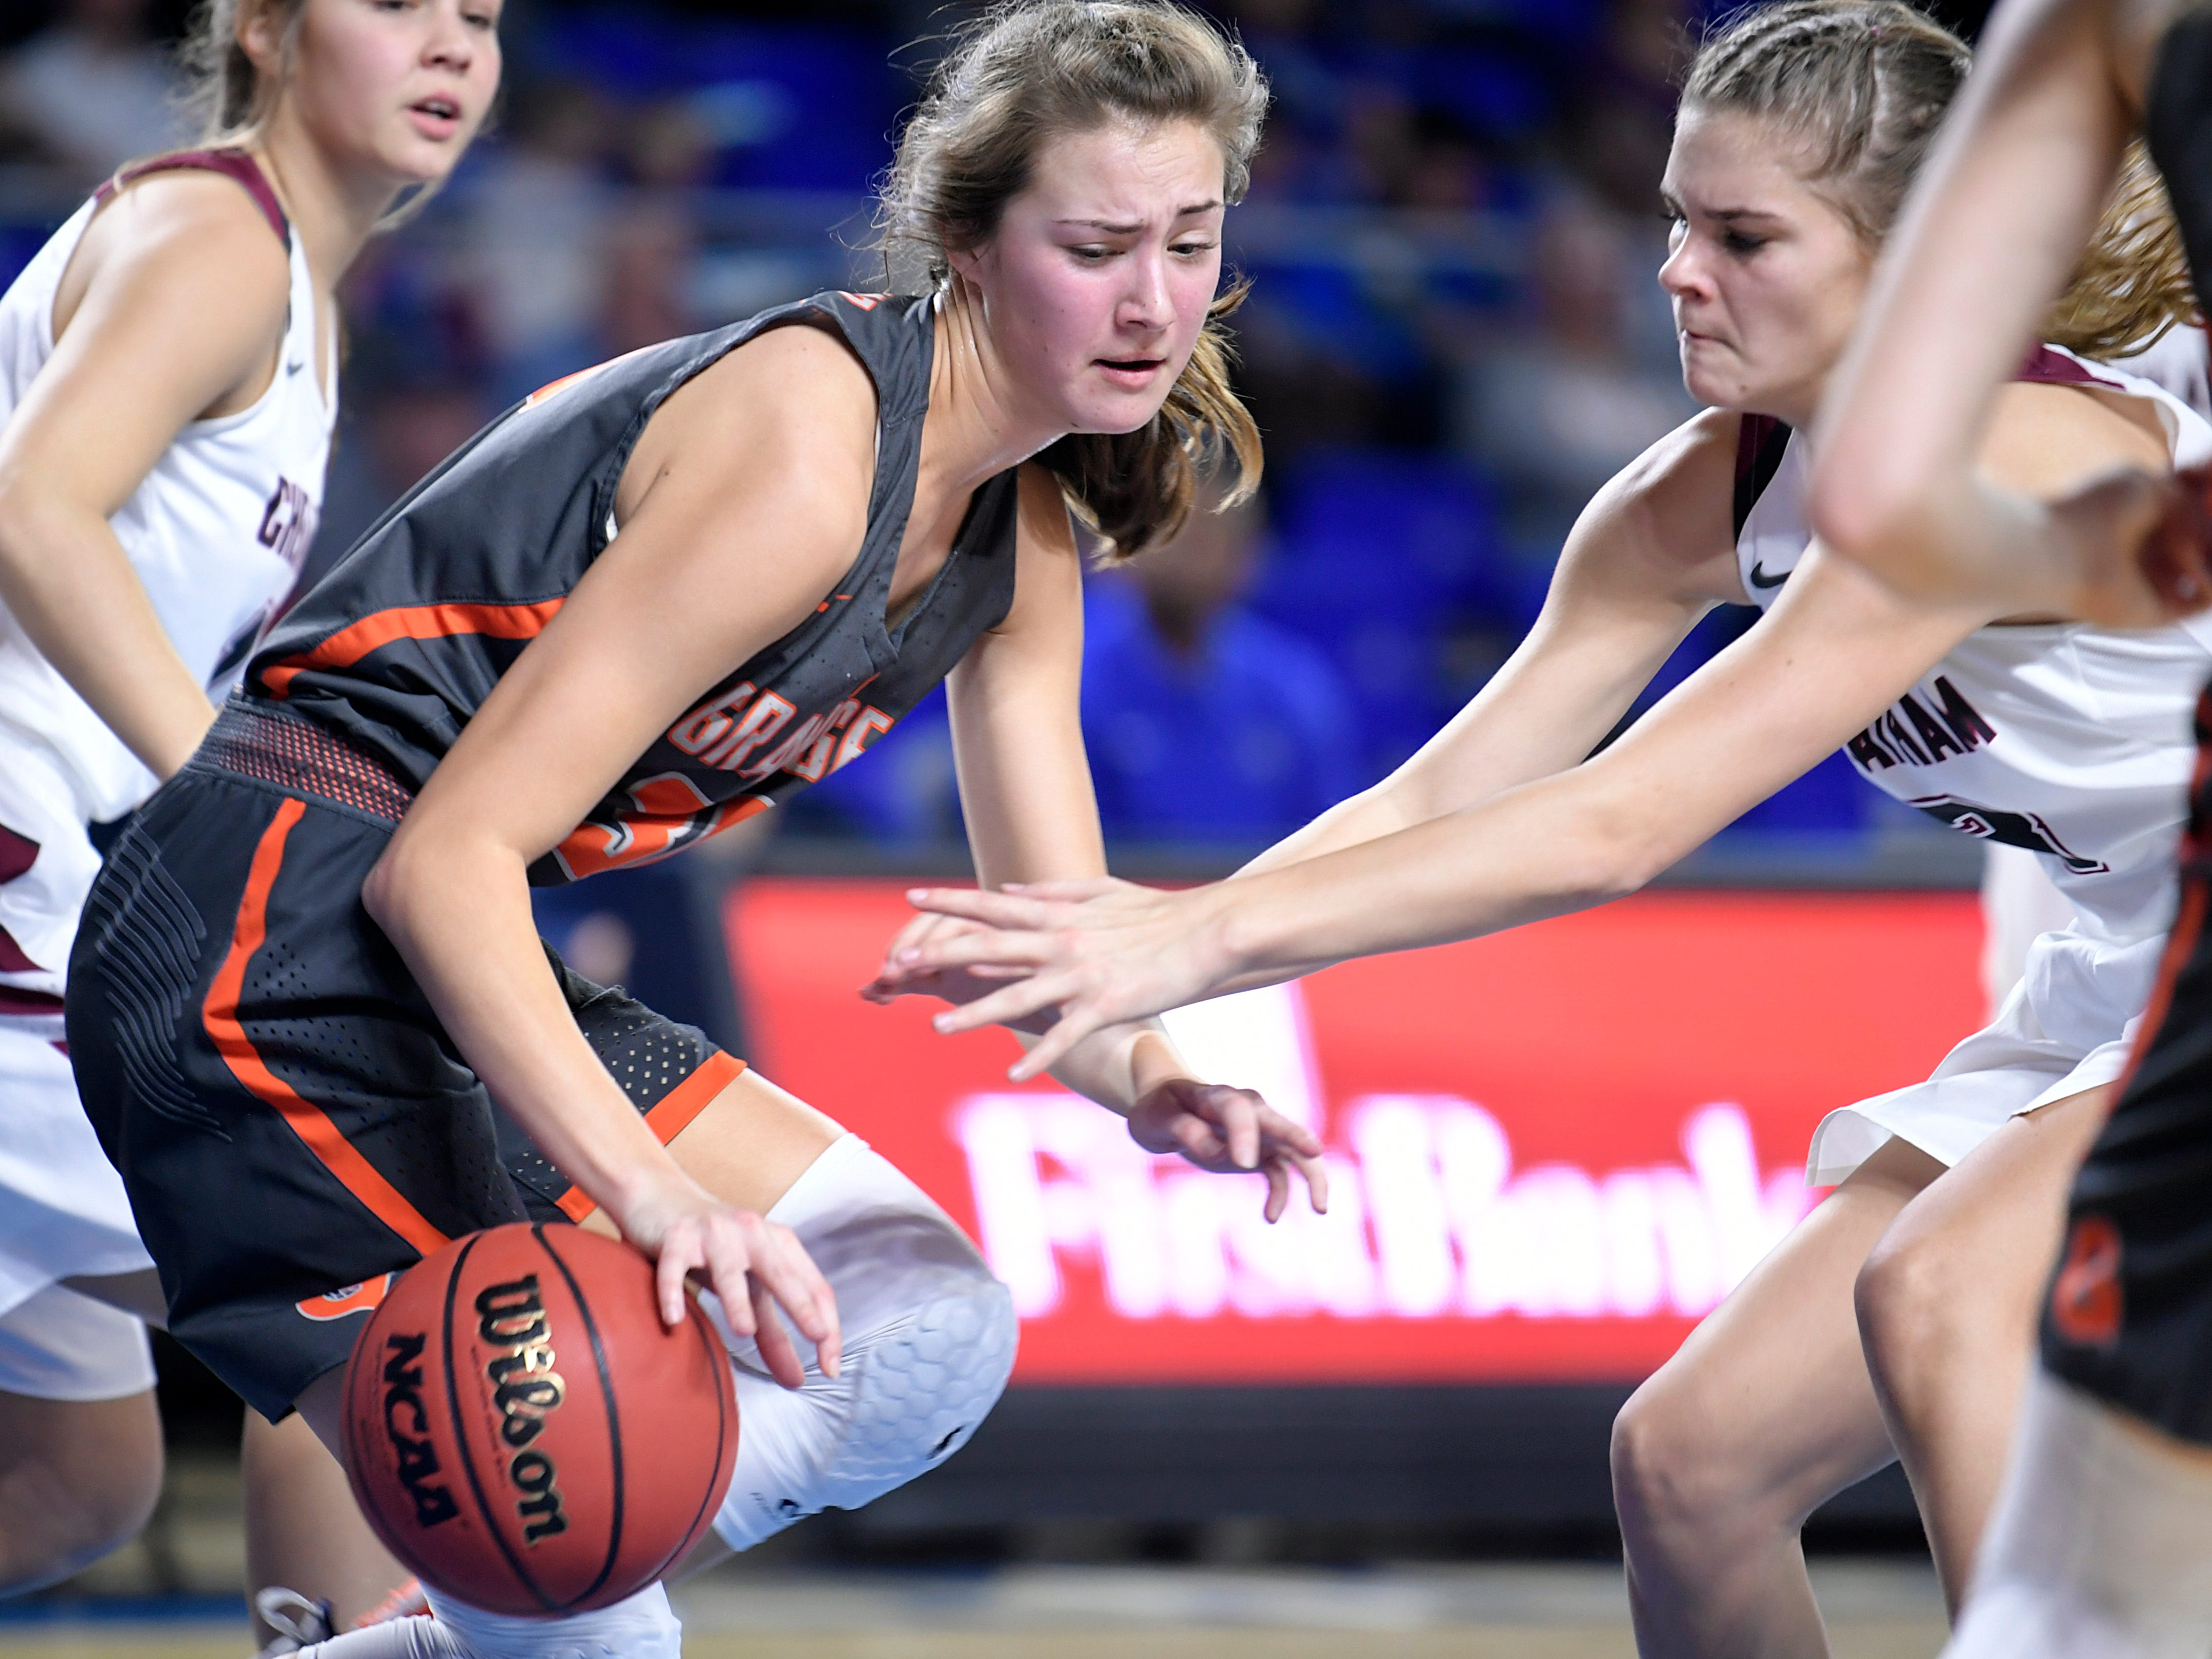 Grainger's Lauren Longmire (30) rebounds the ball against Cheatham County players during the quarter finals of TSSAA BlueCross Class AA girls basketball championship at MTSU's Murphy Center in Murfreesboro on Wednesday, March 6, 2019.